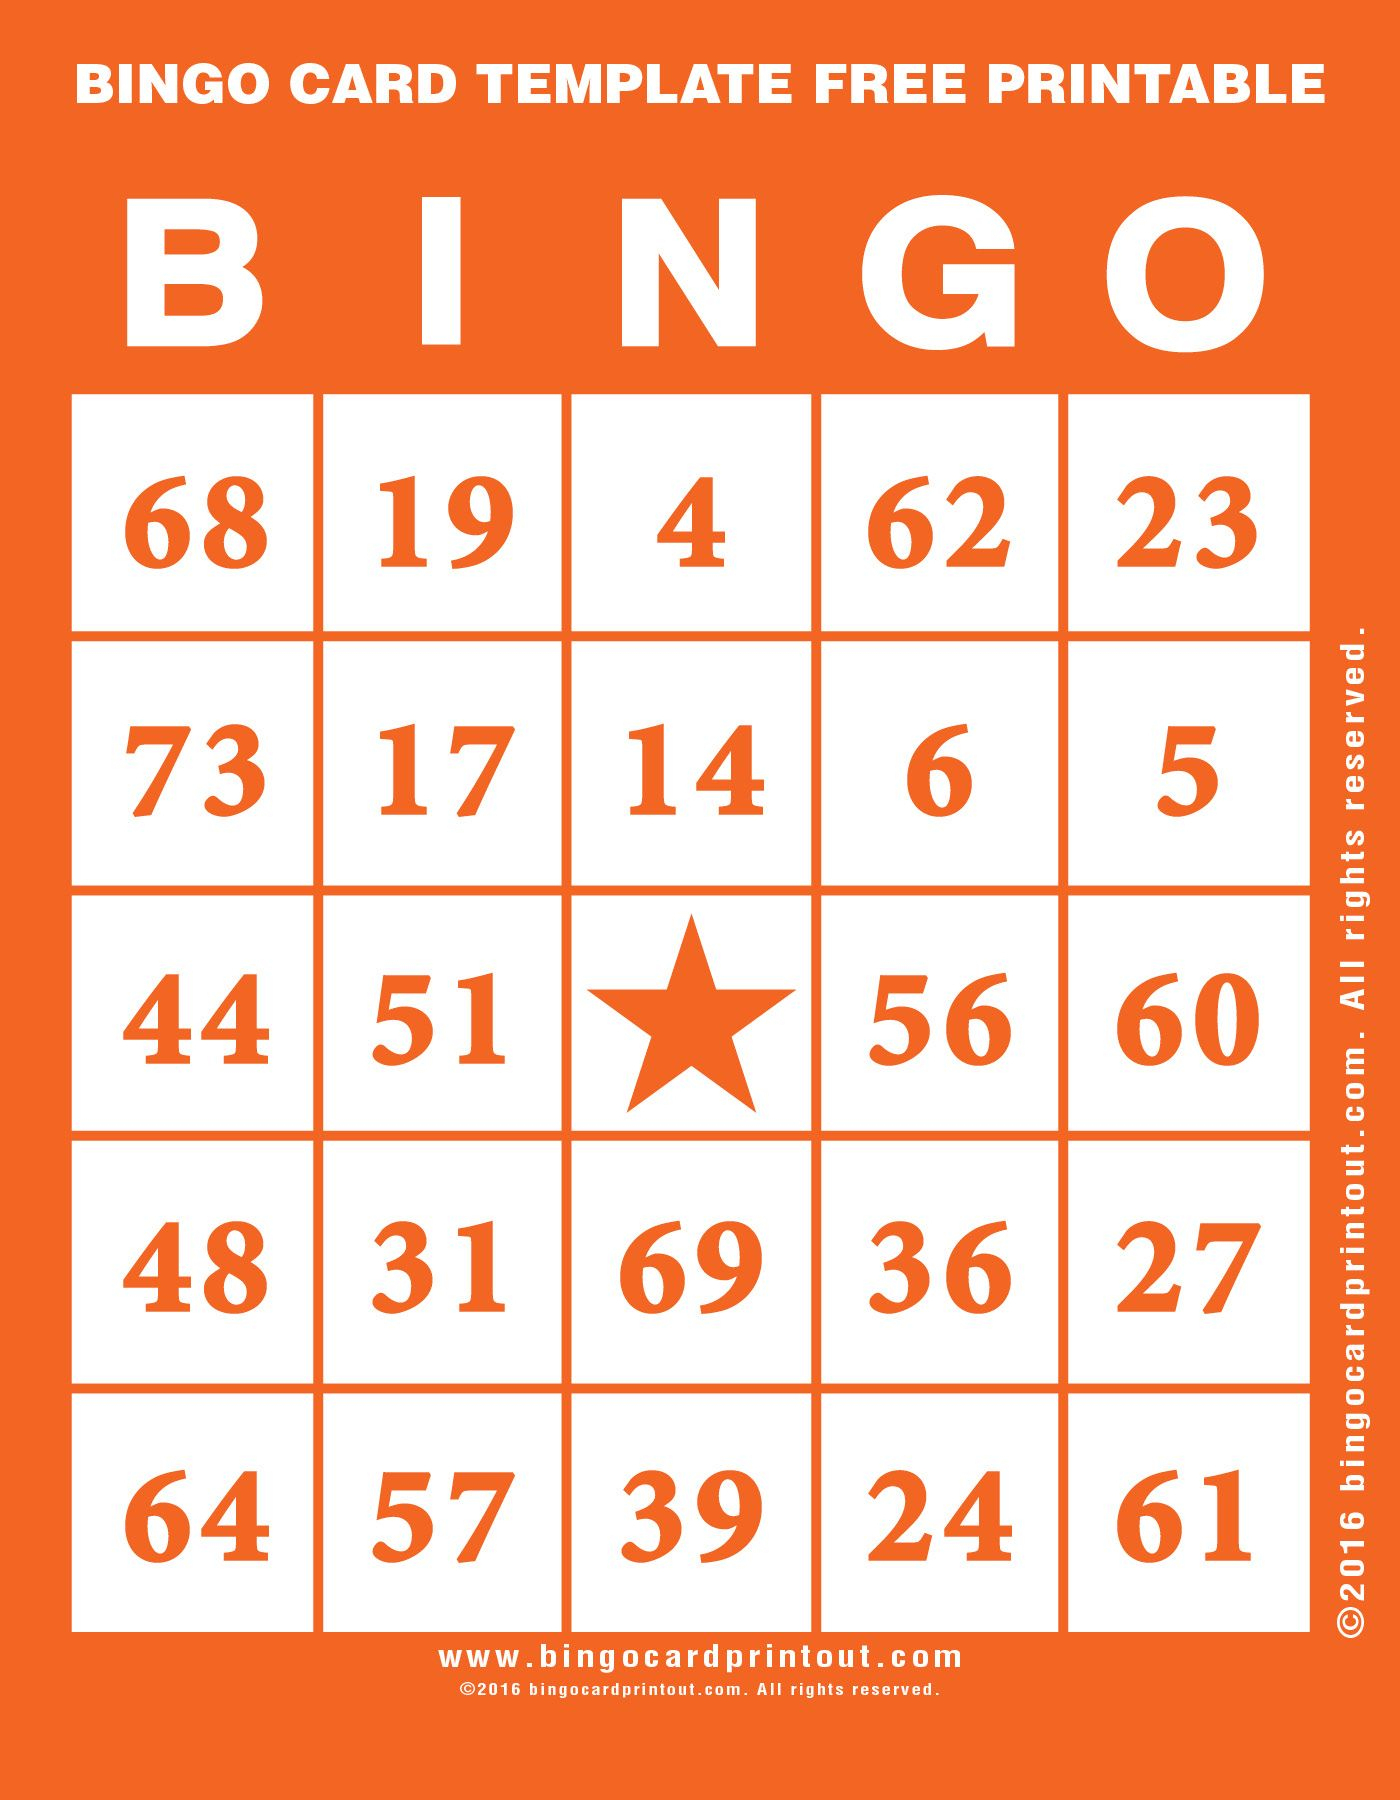 Bingo Card Template Free Printable | Bingo Card Template